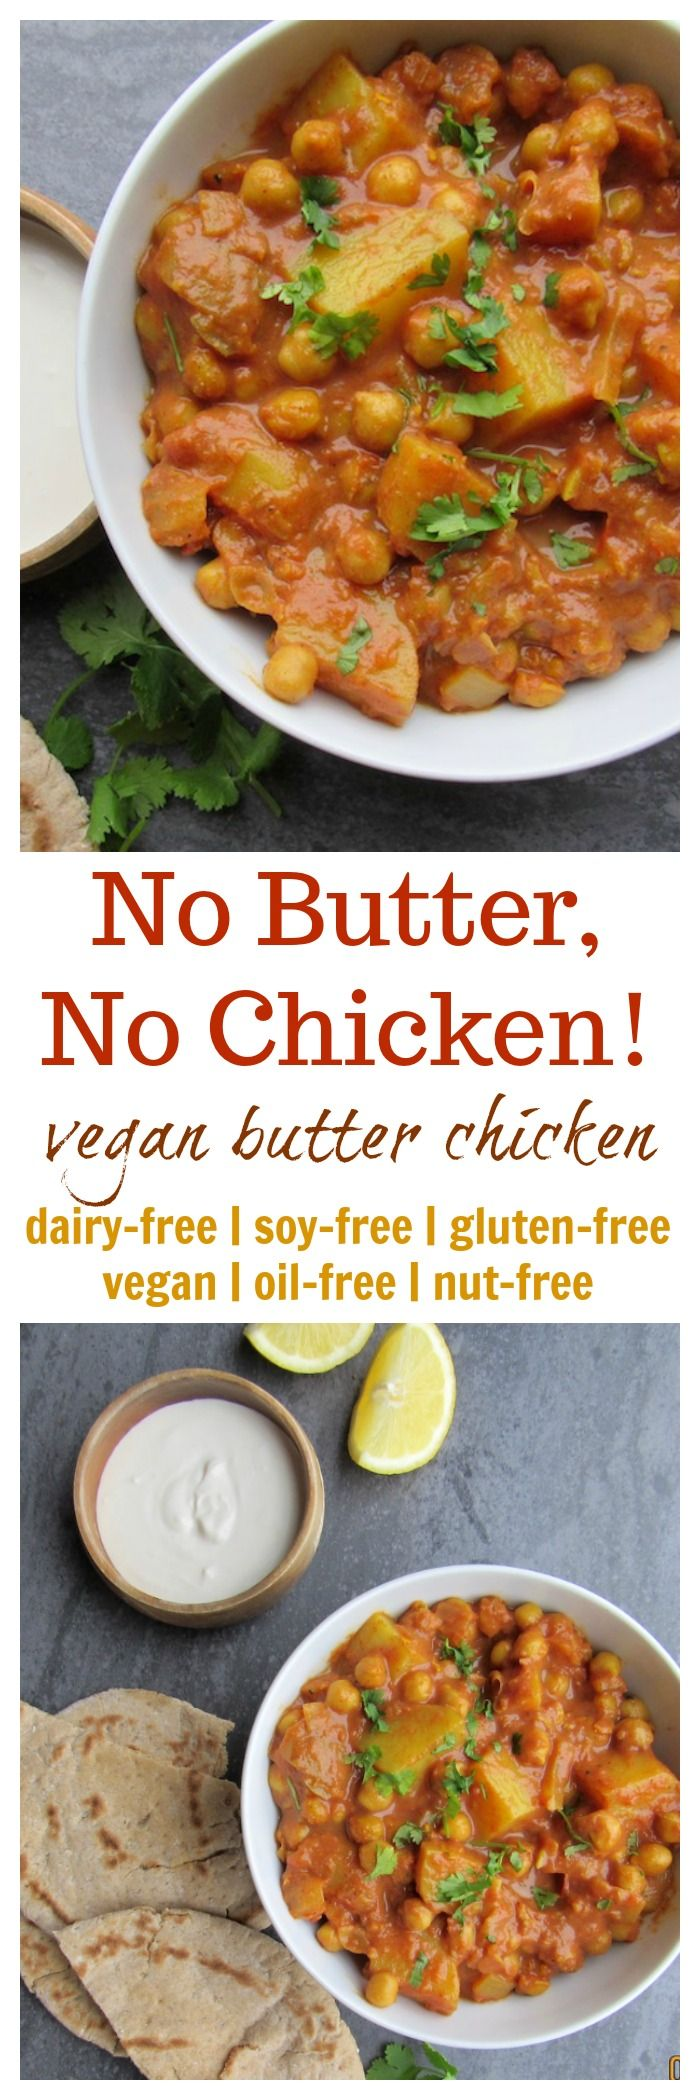 Vegan Butter Chicken: No Butter, No Chicken! (vegan, gluten-free, oil-free, nut-free option, soy-free)